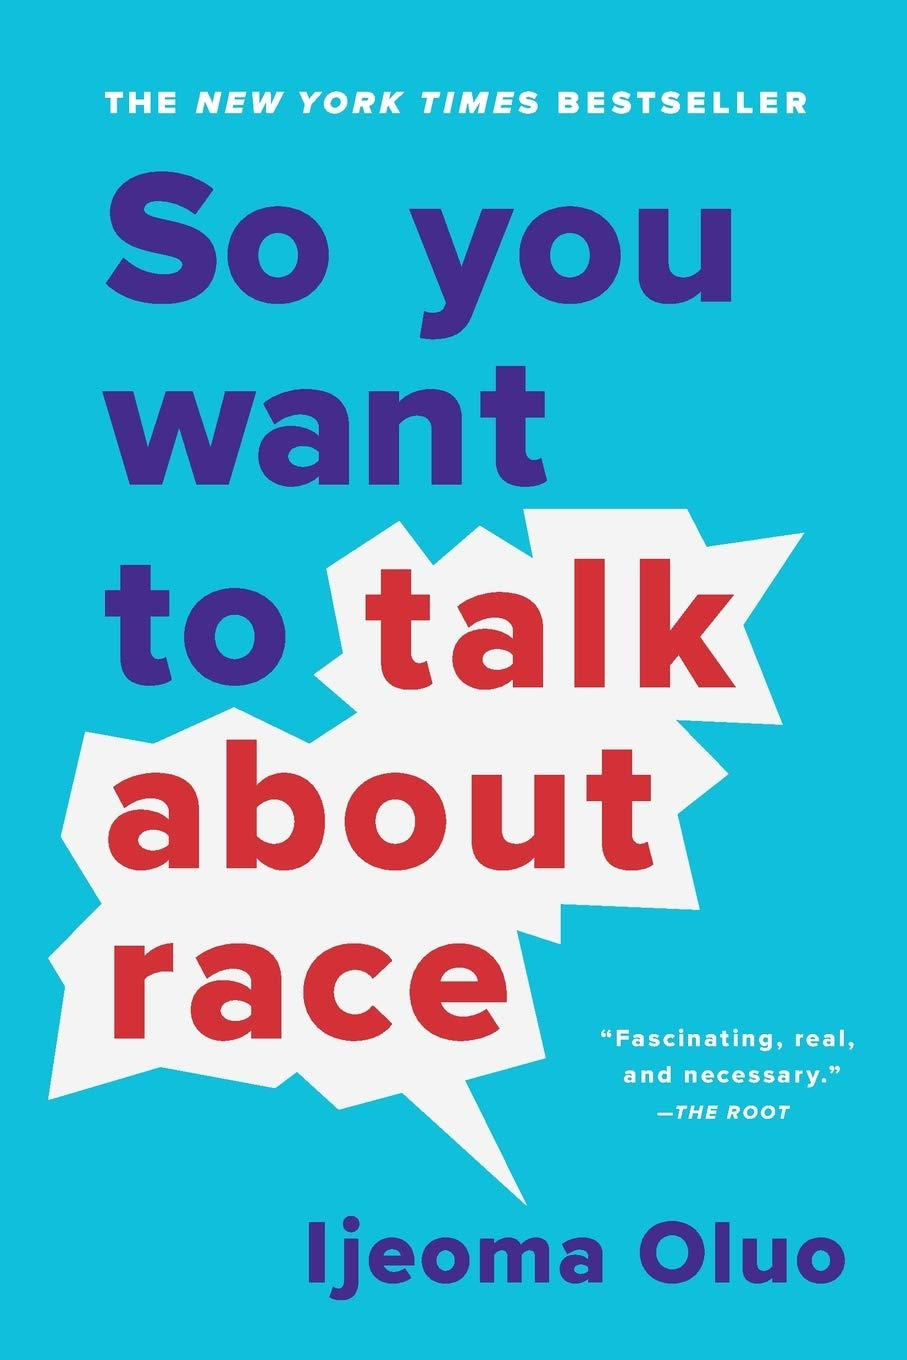 'So You Want to Talk About Race' by Ijeoma Oluo